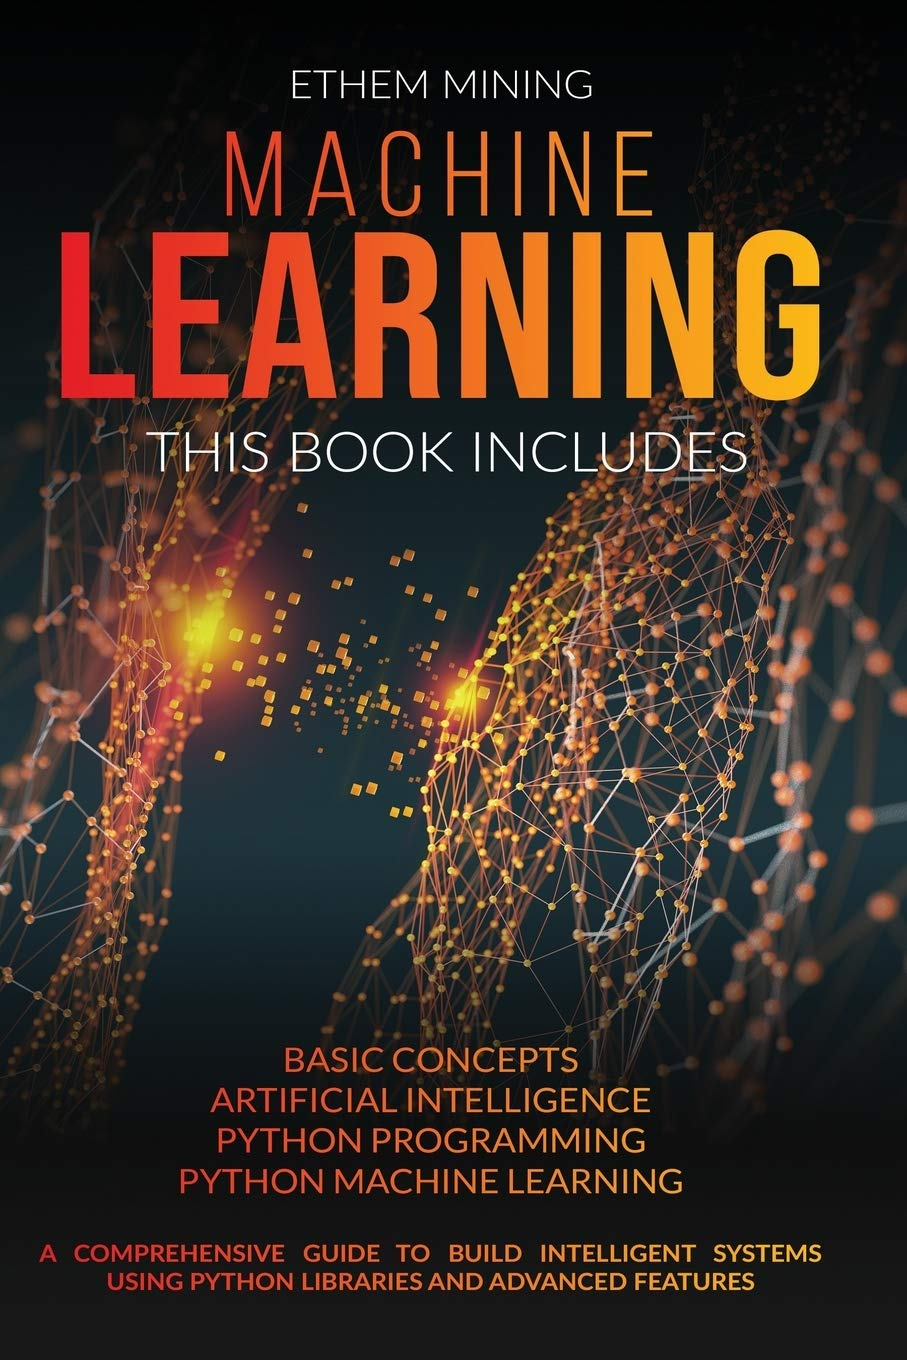 Machine Learning: This book includes: Basic Concepts + Artificial Intelligence + Python Programming + Python Machine Learning. A Comprehensive Guide … Using Python Libraries and Advanced Features